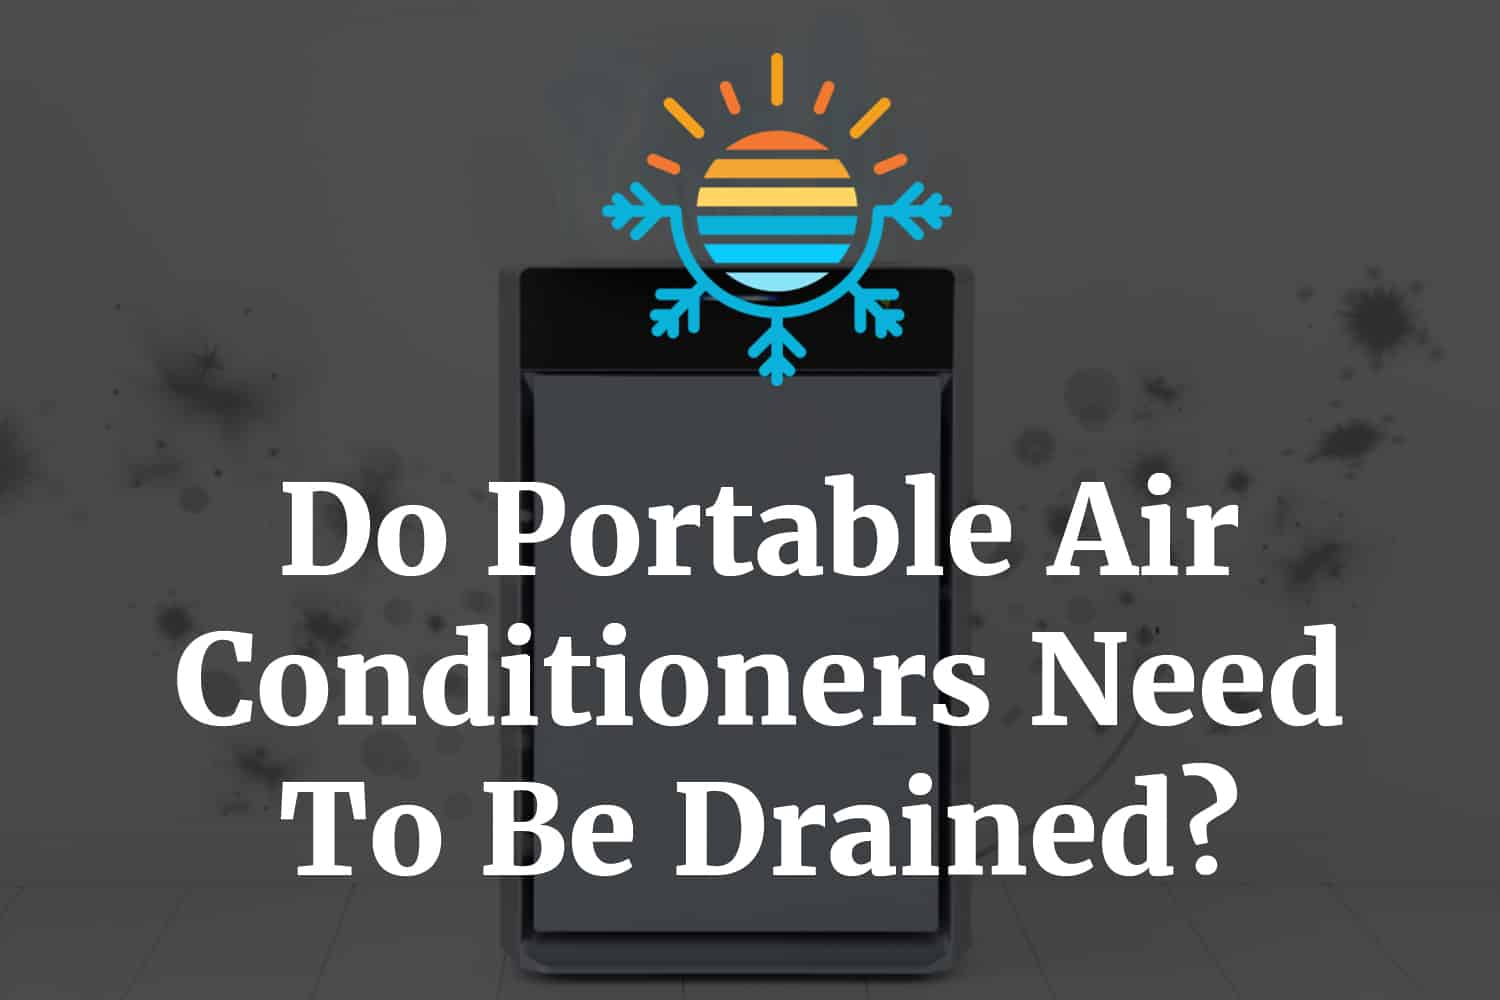 Do portable air conditioners need to be drained